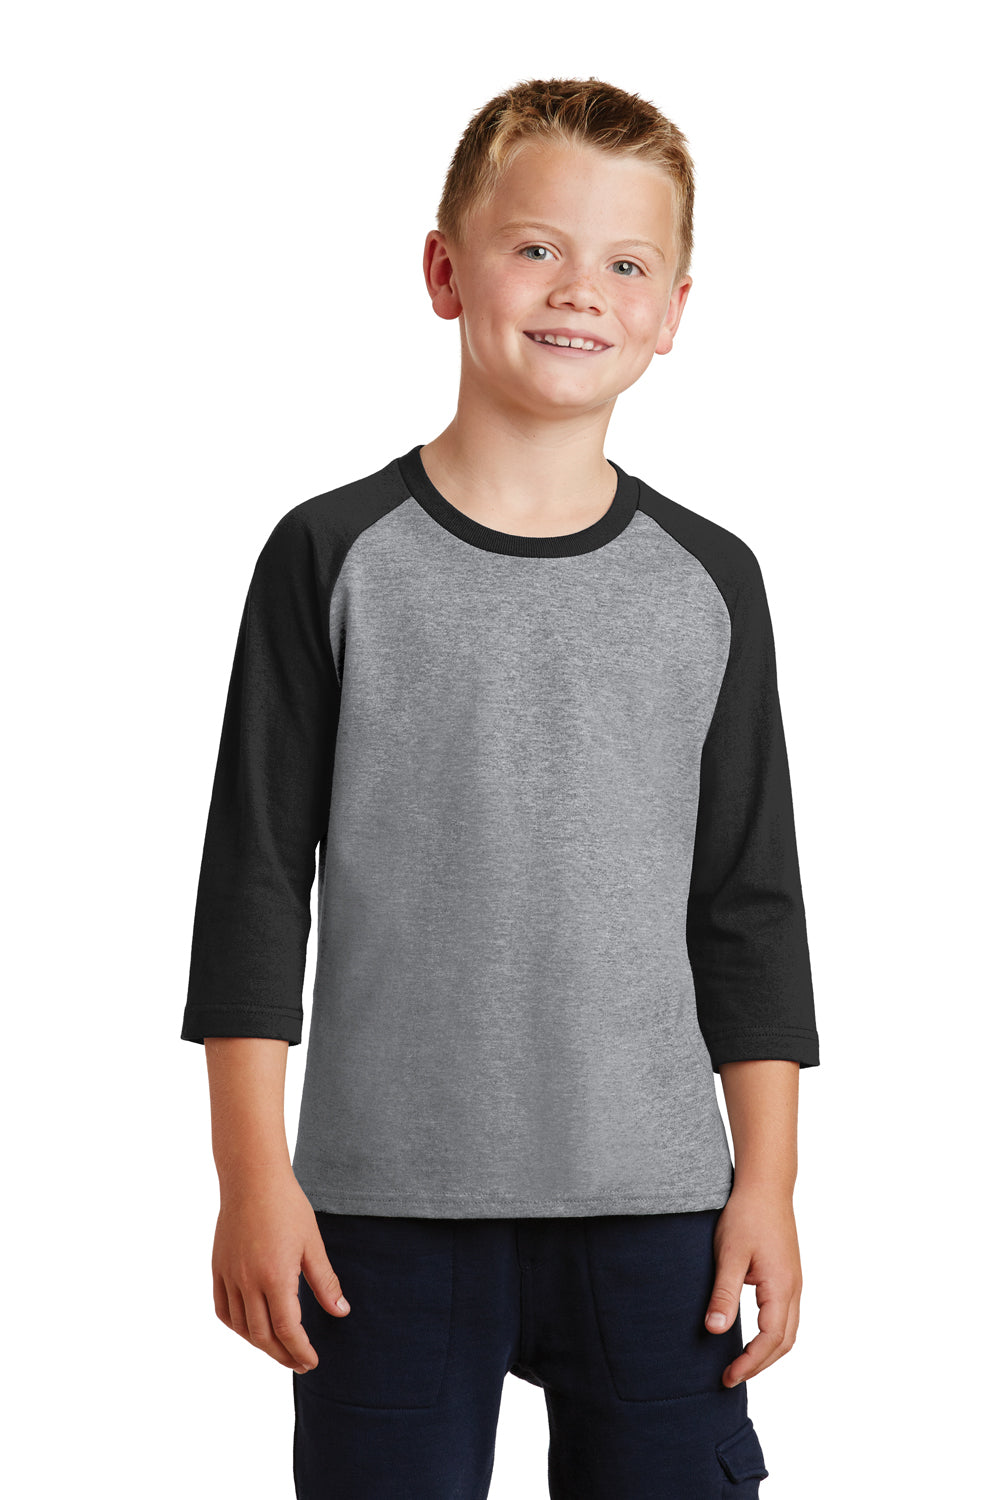 Port & Company PC55YRS Youth Core Moisture Wicking 3/4 Sleeve Crewneck T-Shirt Heather Grey/Black Front